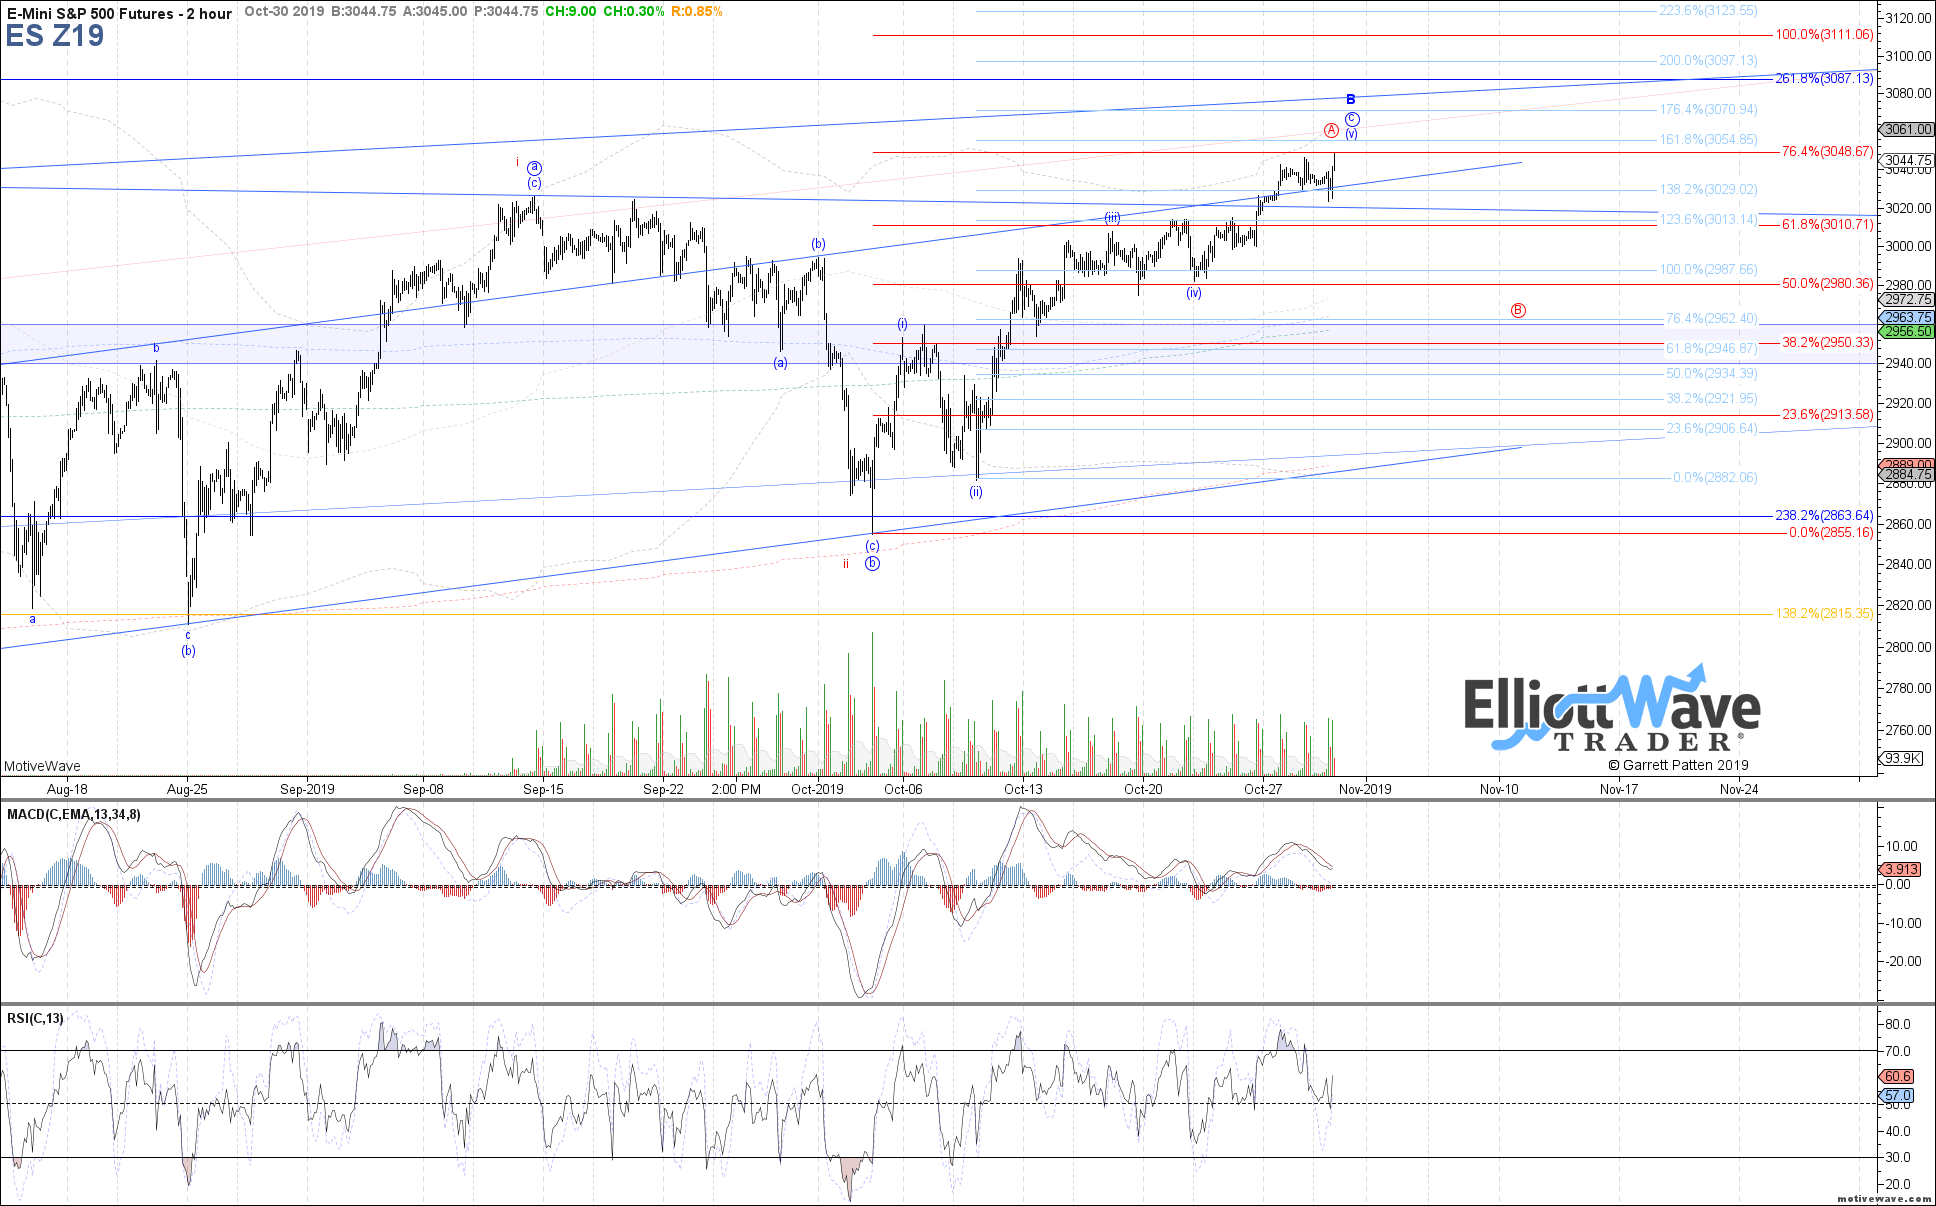 ES Z19 - Primary Analysis - Oct-30 1230 PM (2 hour)